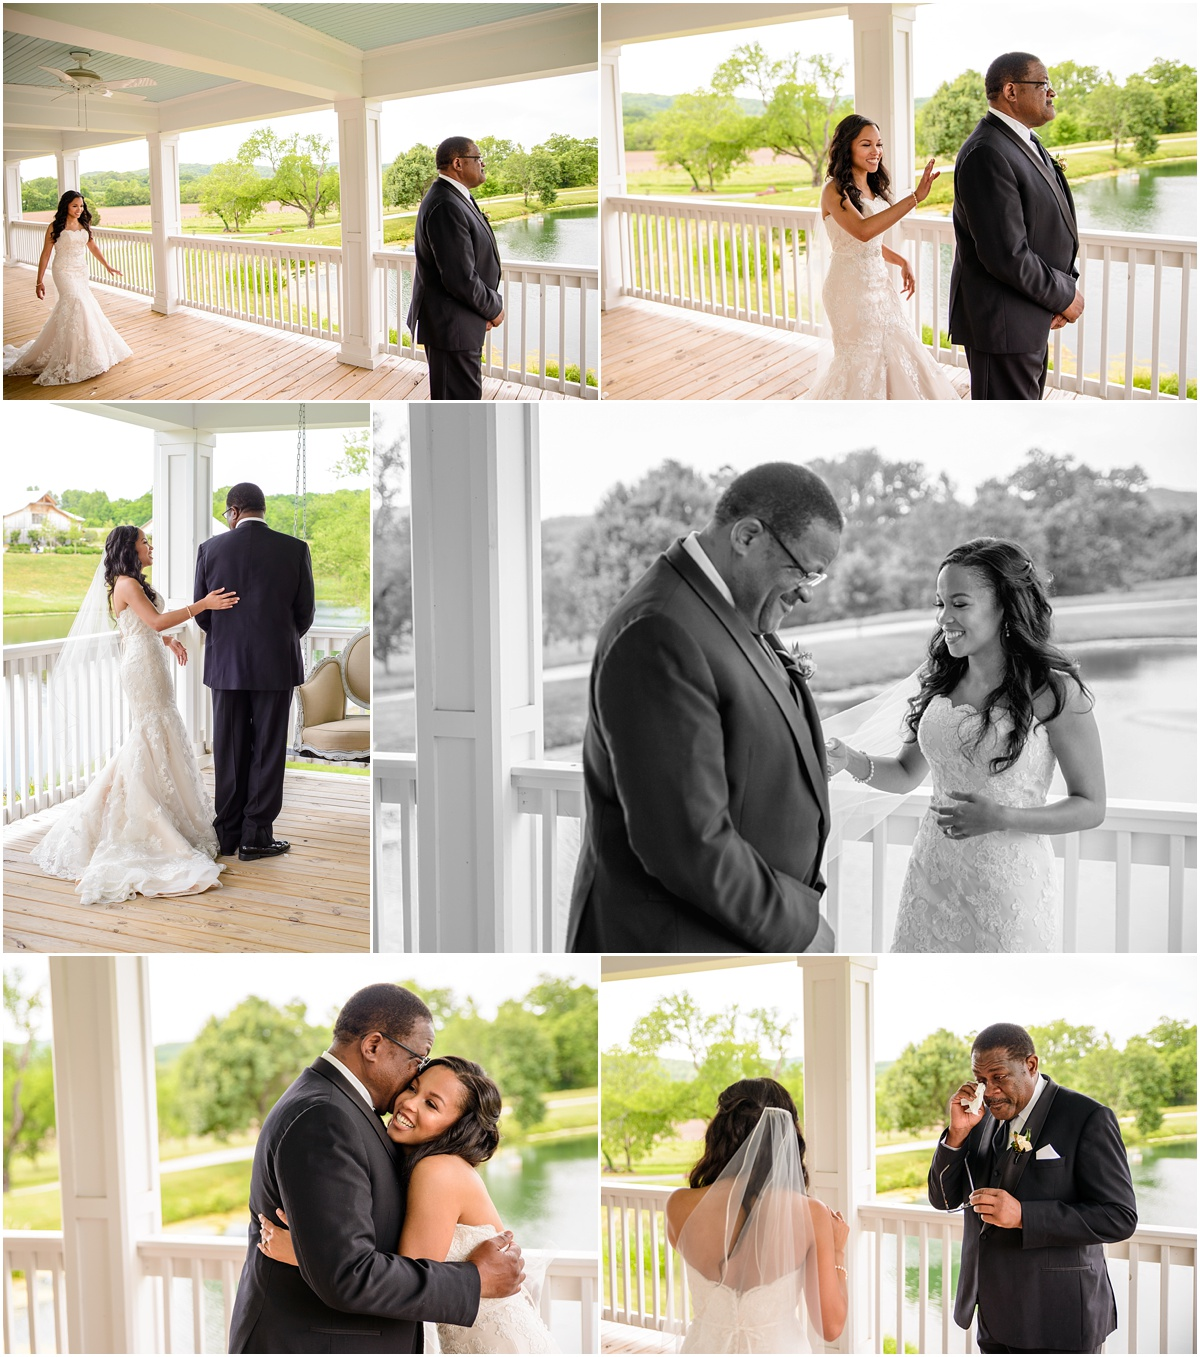 Greg Smit Photography Mint Springs Farm Nashville Tennessee wedding photographer_0336